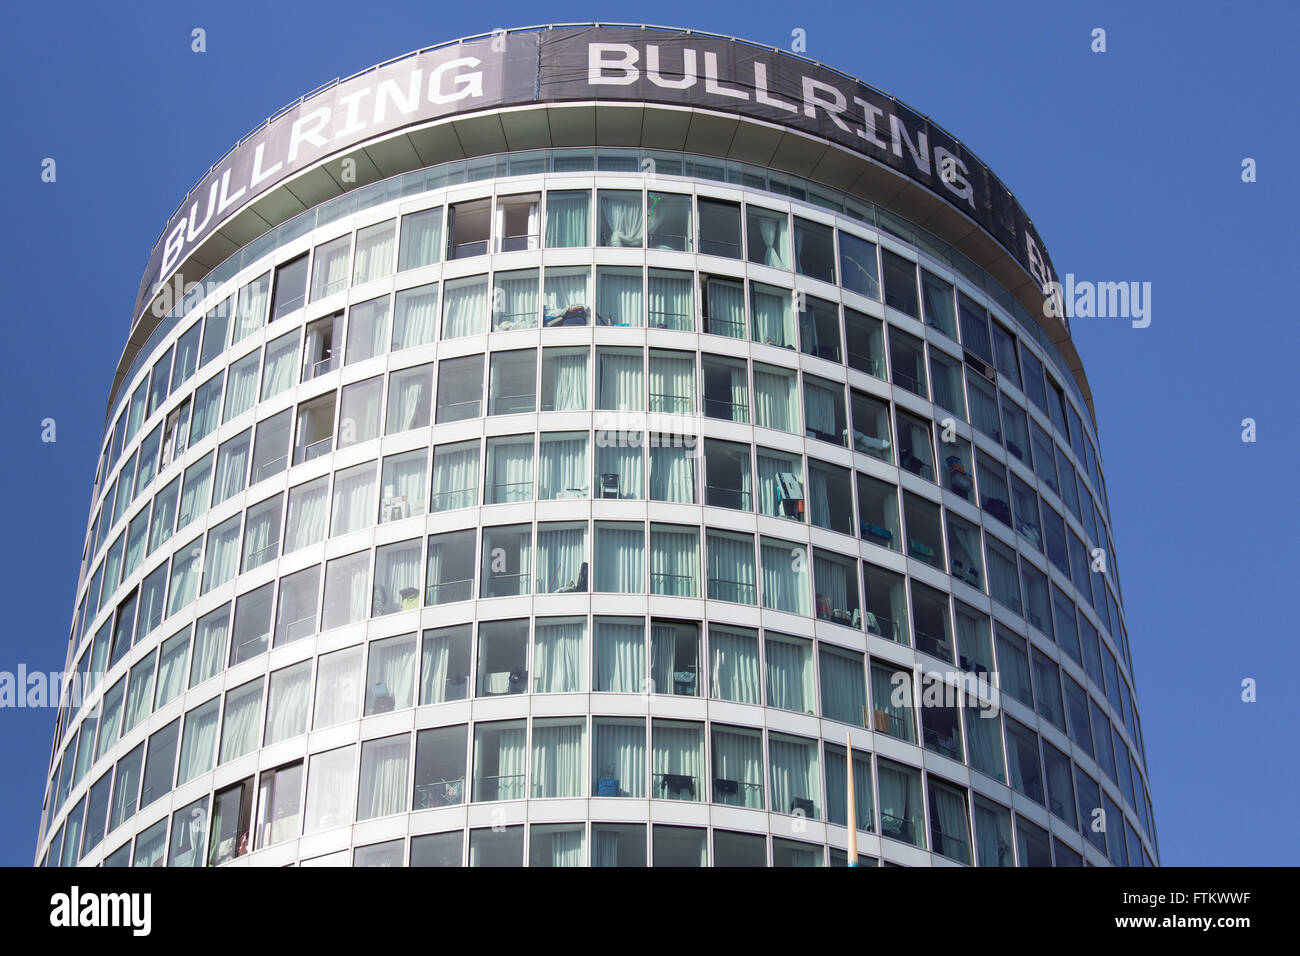 The iconic Rotunda Building situated next to the Bullring. The Rotunda comprises of Flats and rented apartments. - Stock Image